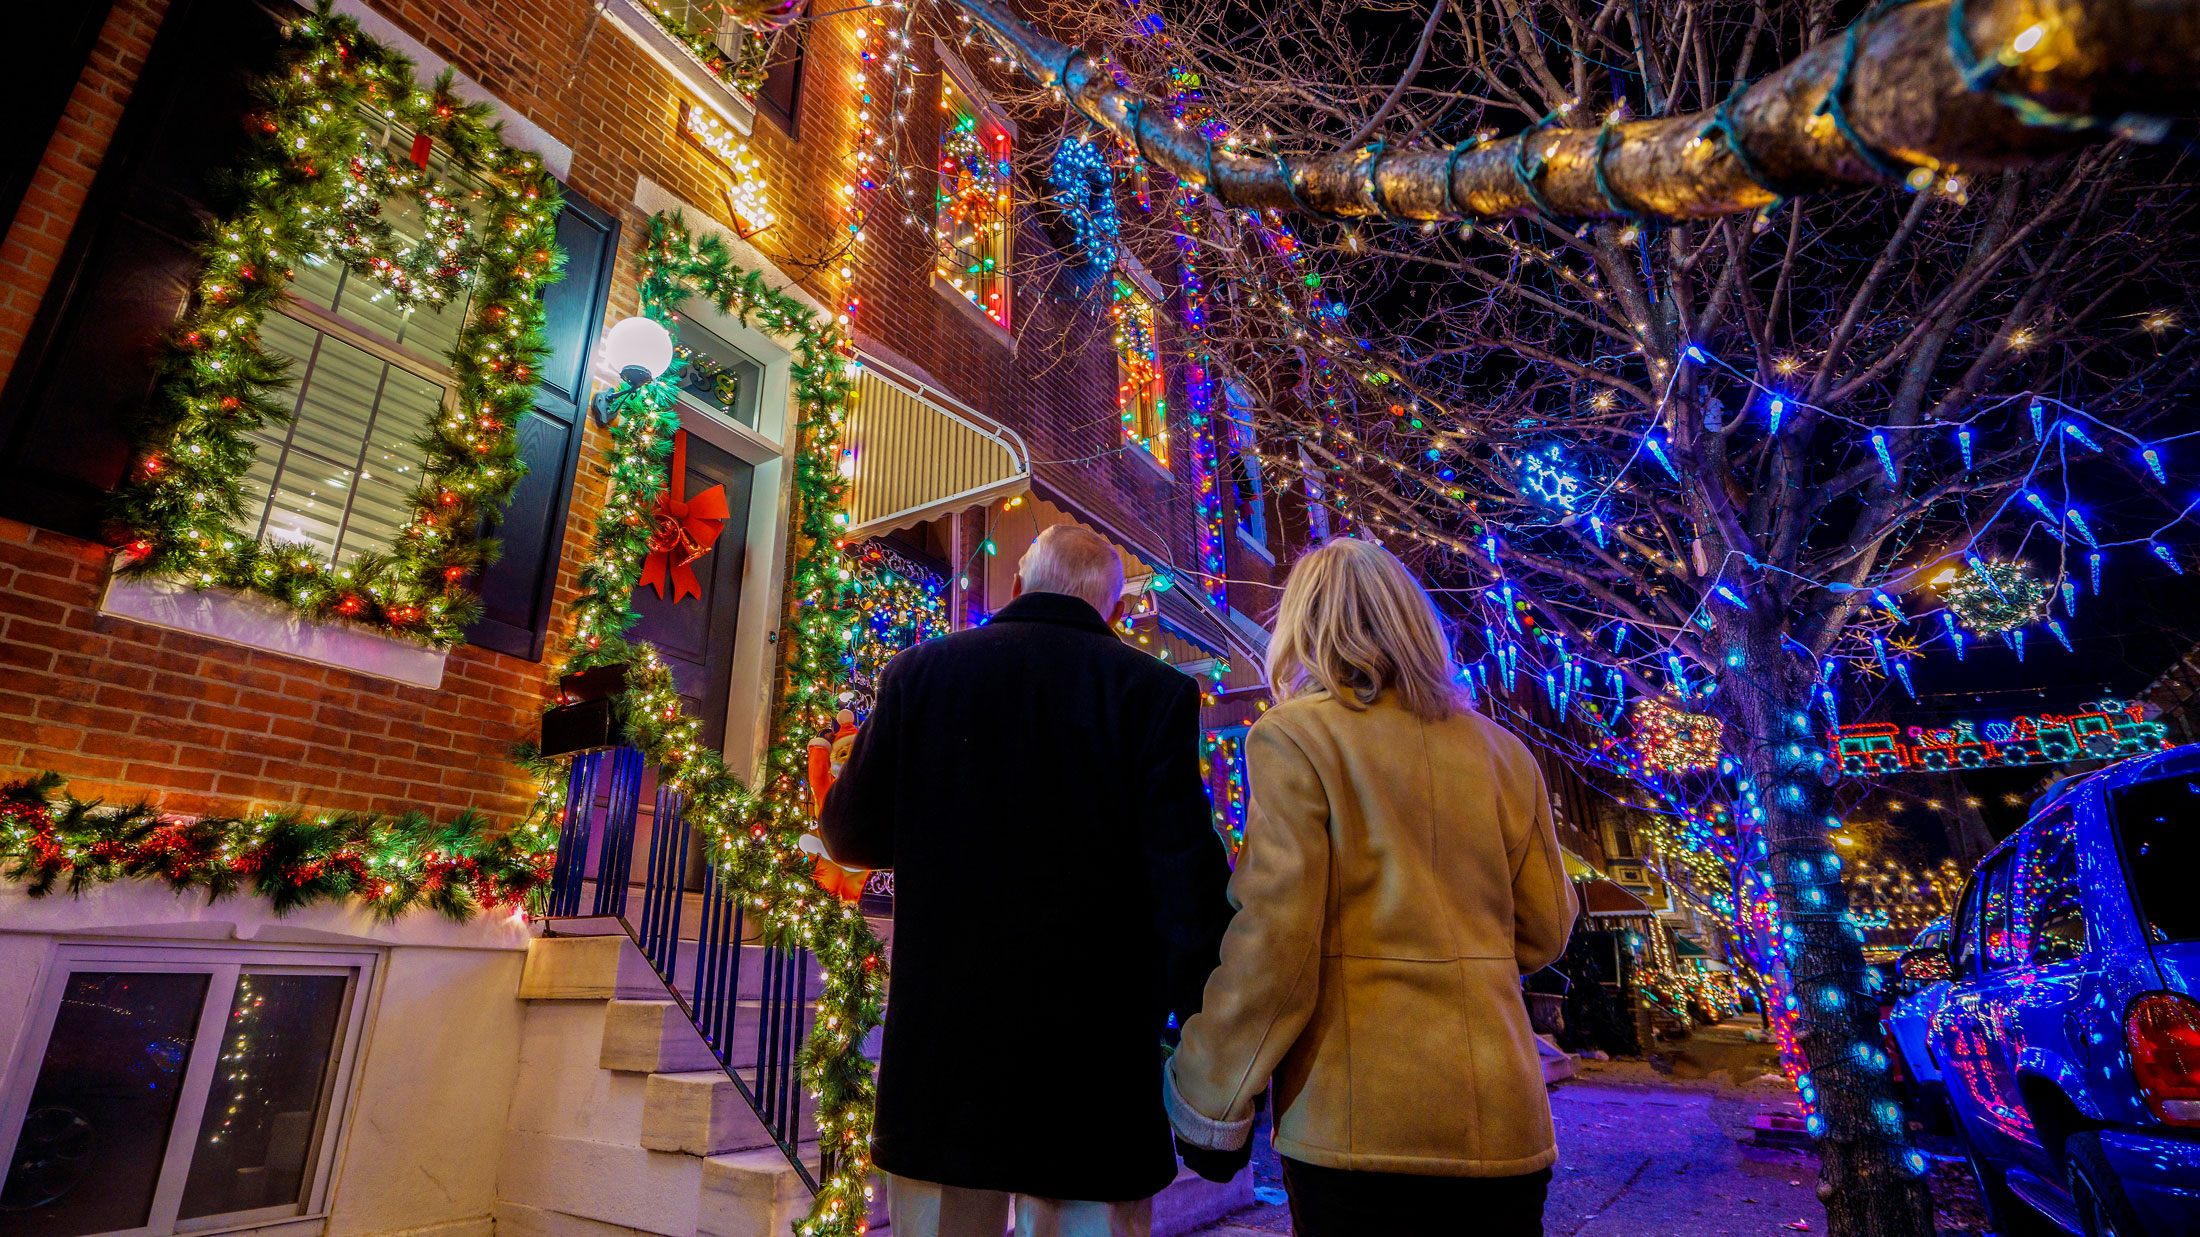 Christmas Time In Philadelphia 2020 The Top Places to View Holiday Lights in Philadelphia for 2019